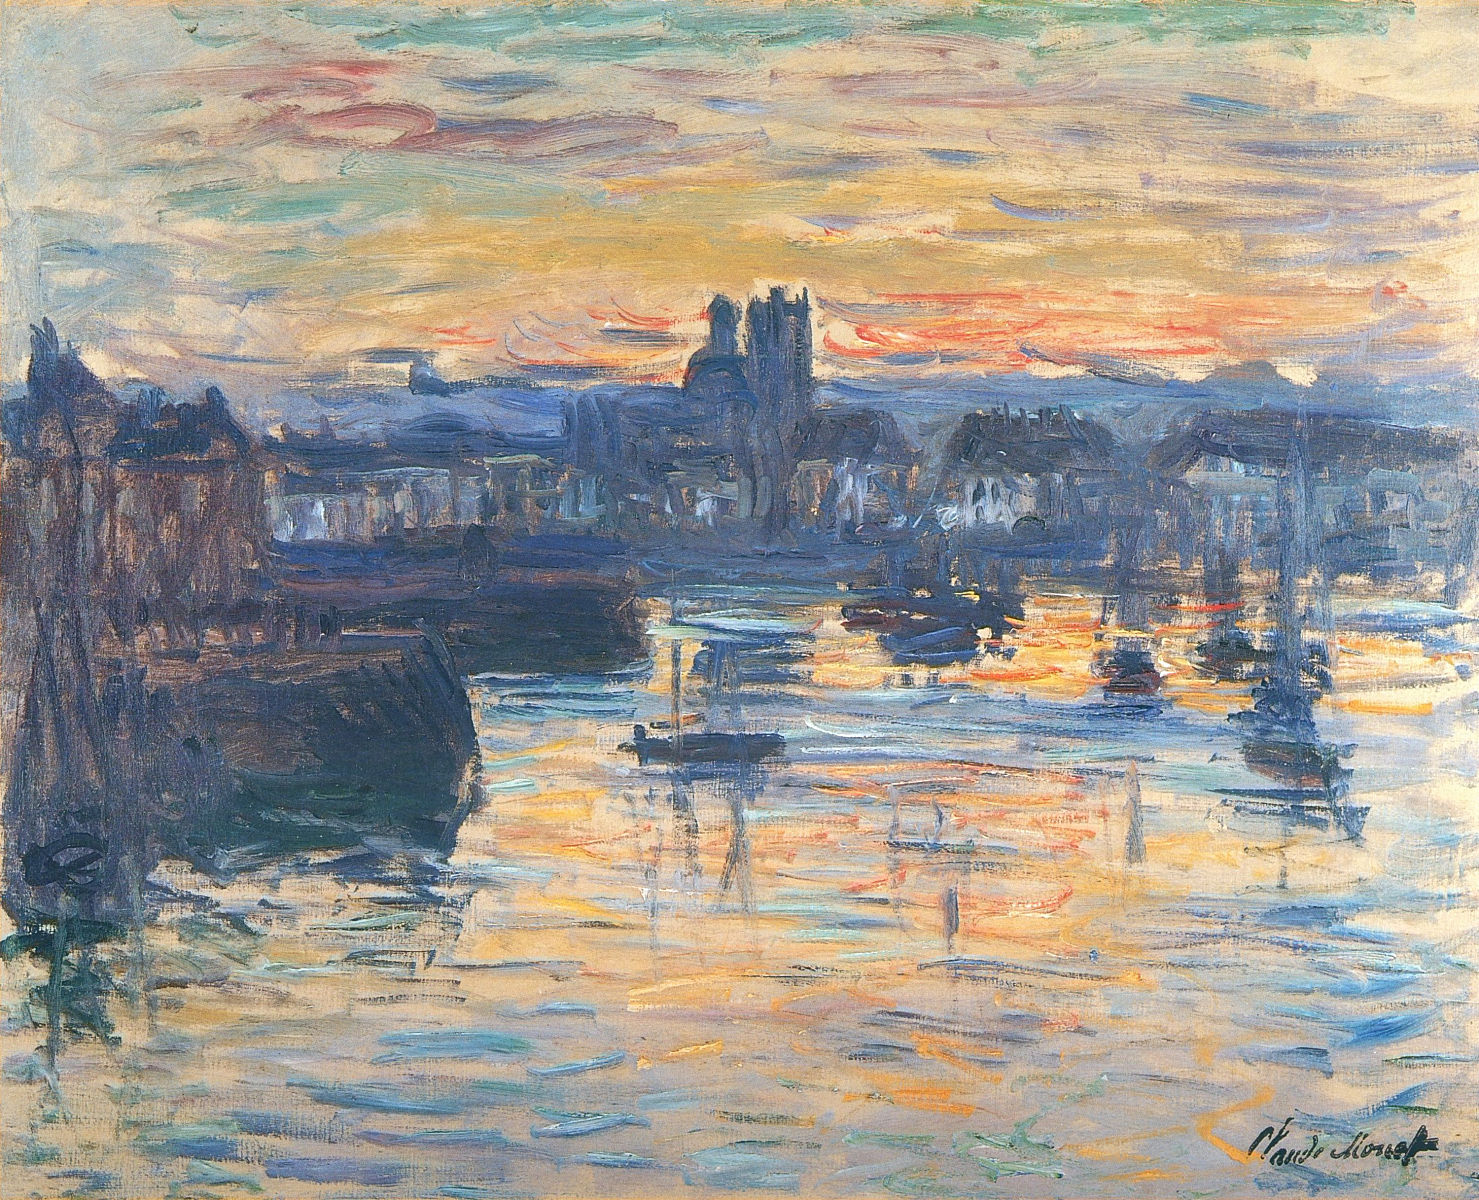 the origin and history of impressionism Impressionism can be considered the first distinctly modern movement in painting developing in paris in the 1860s, its influence spread throughout europe and eventually the united states.